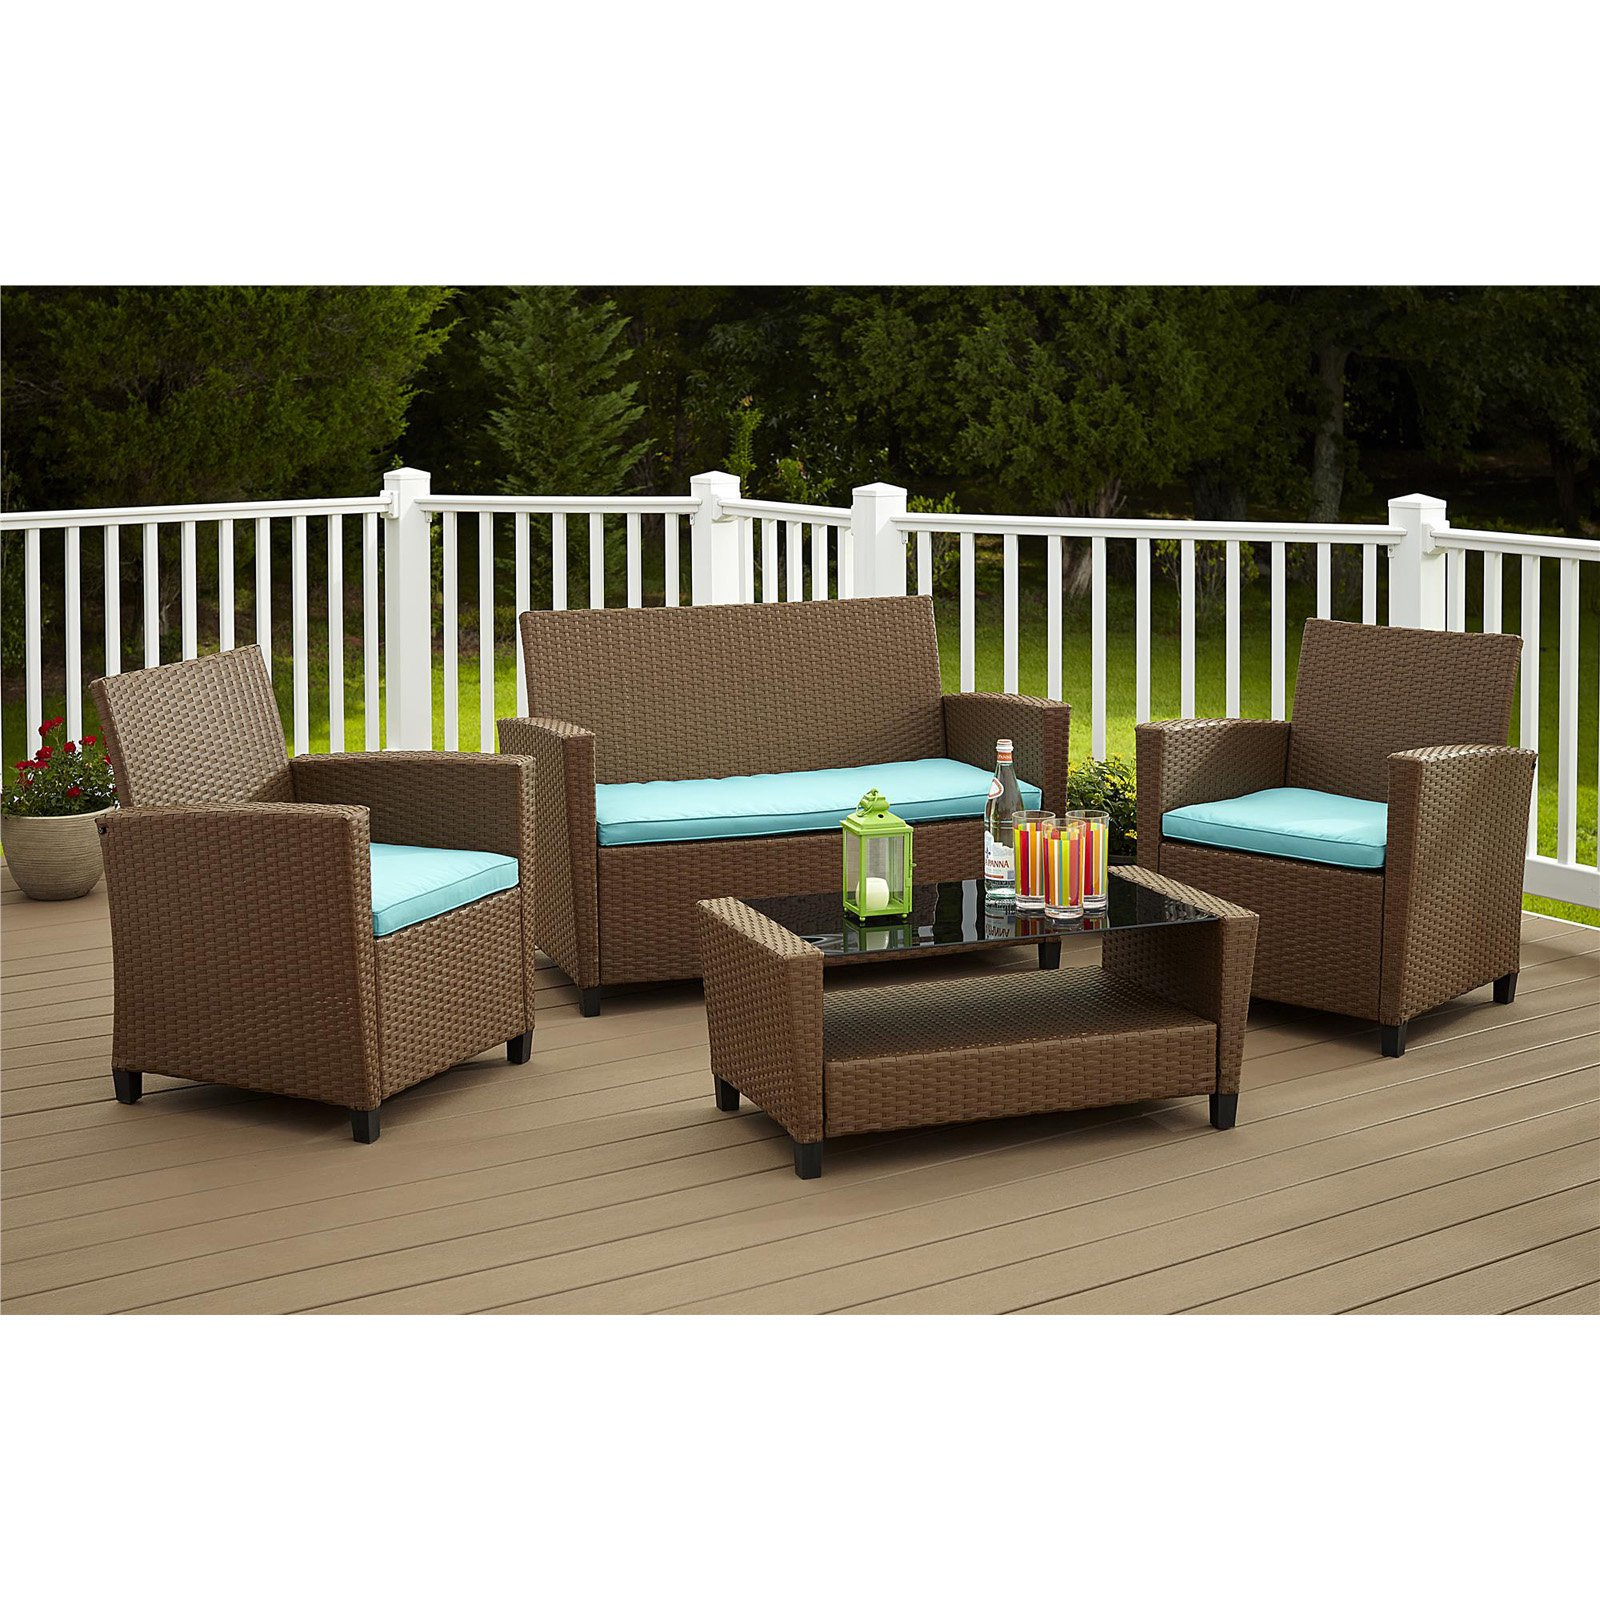 Cosco Outdoor Malmo 4-Piece Resin Wicker Patio Conversation Set by Cosco